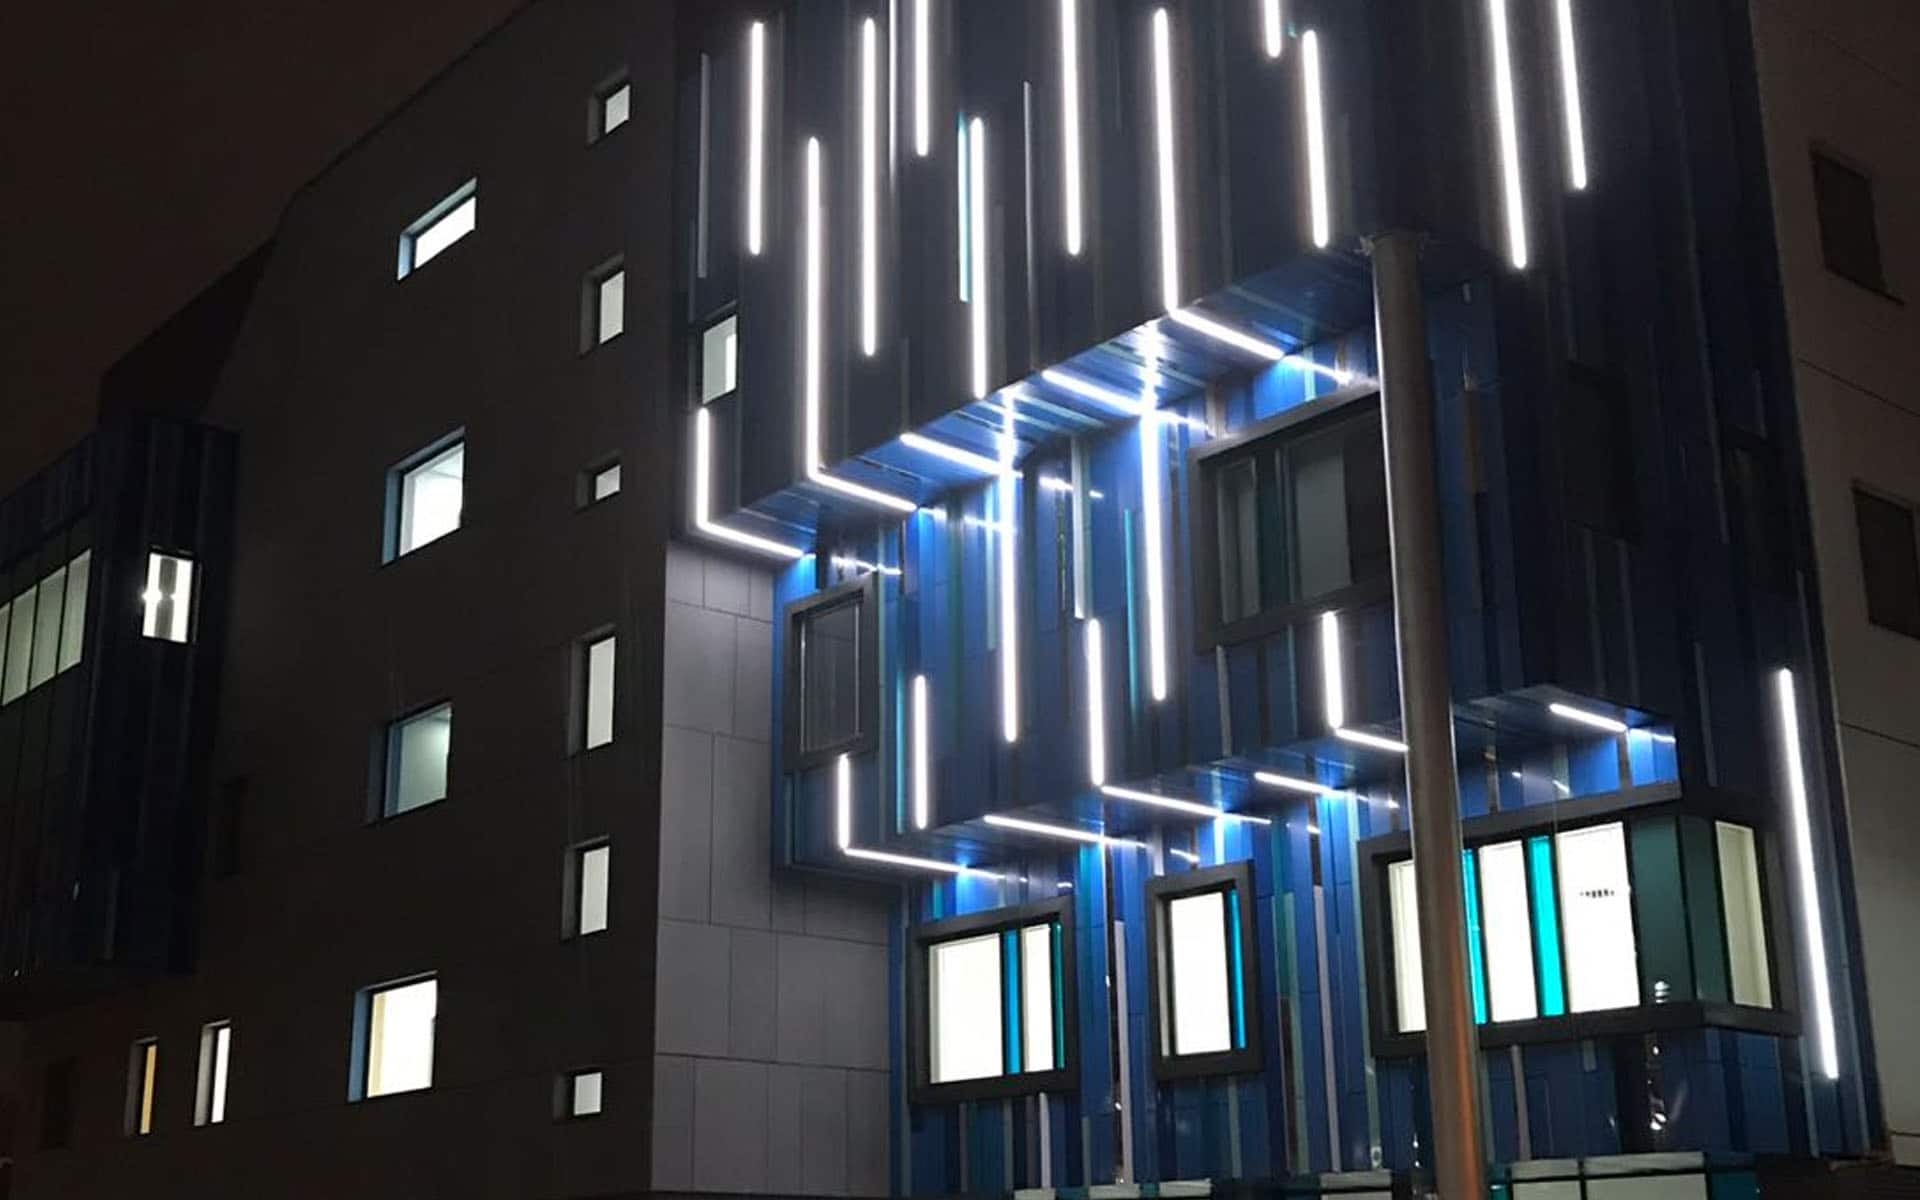 Birmingham Childrens Hospital Bright Polished Stainless Steel